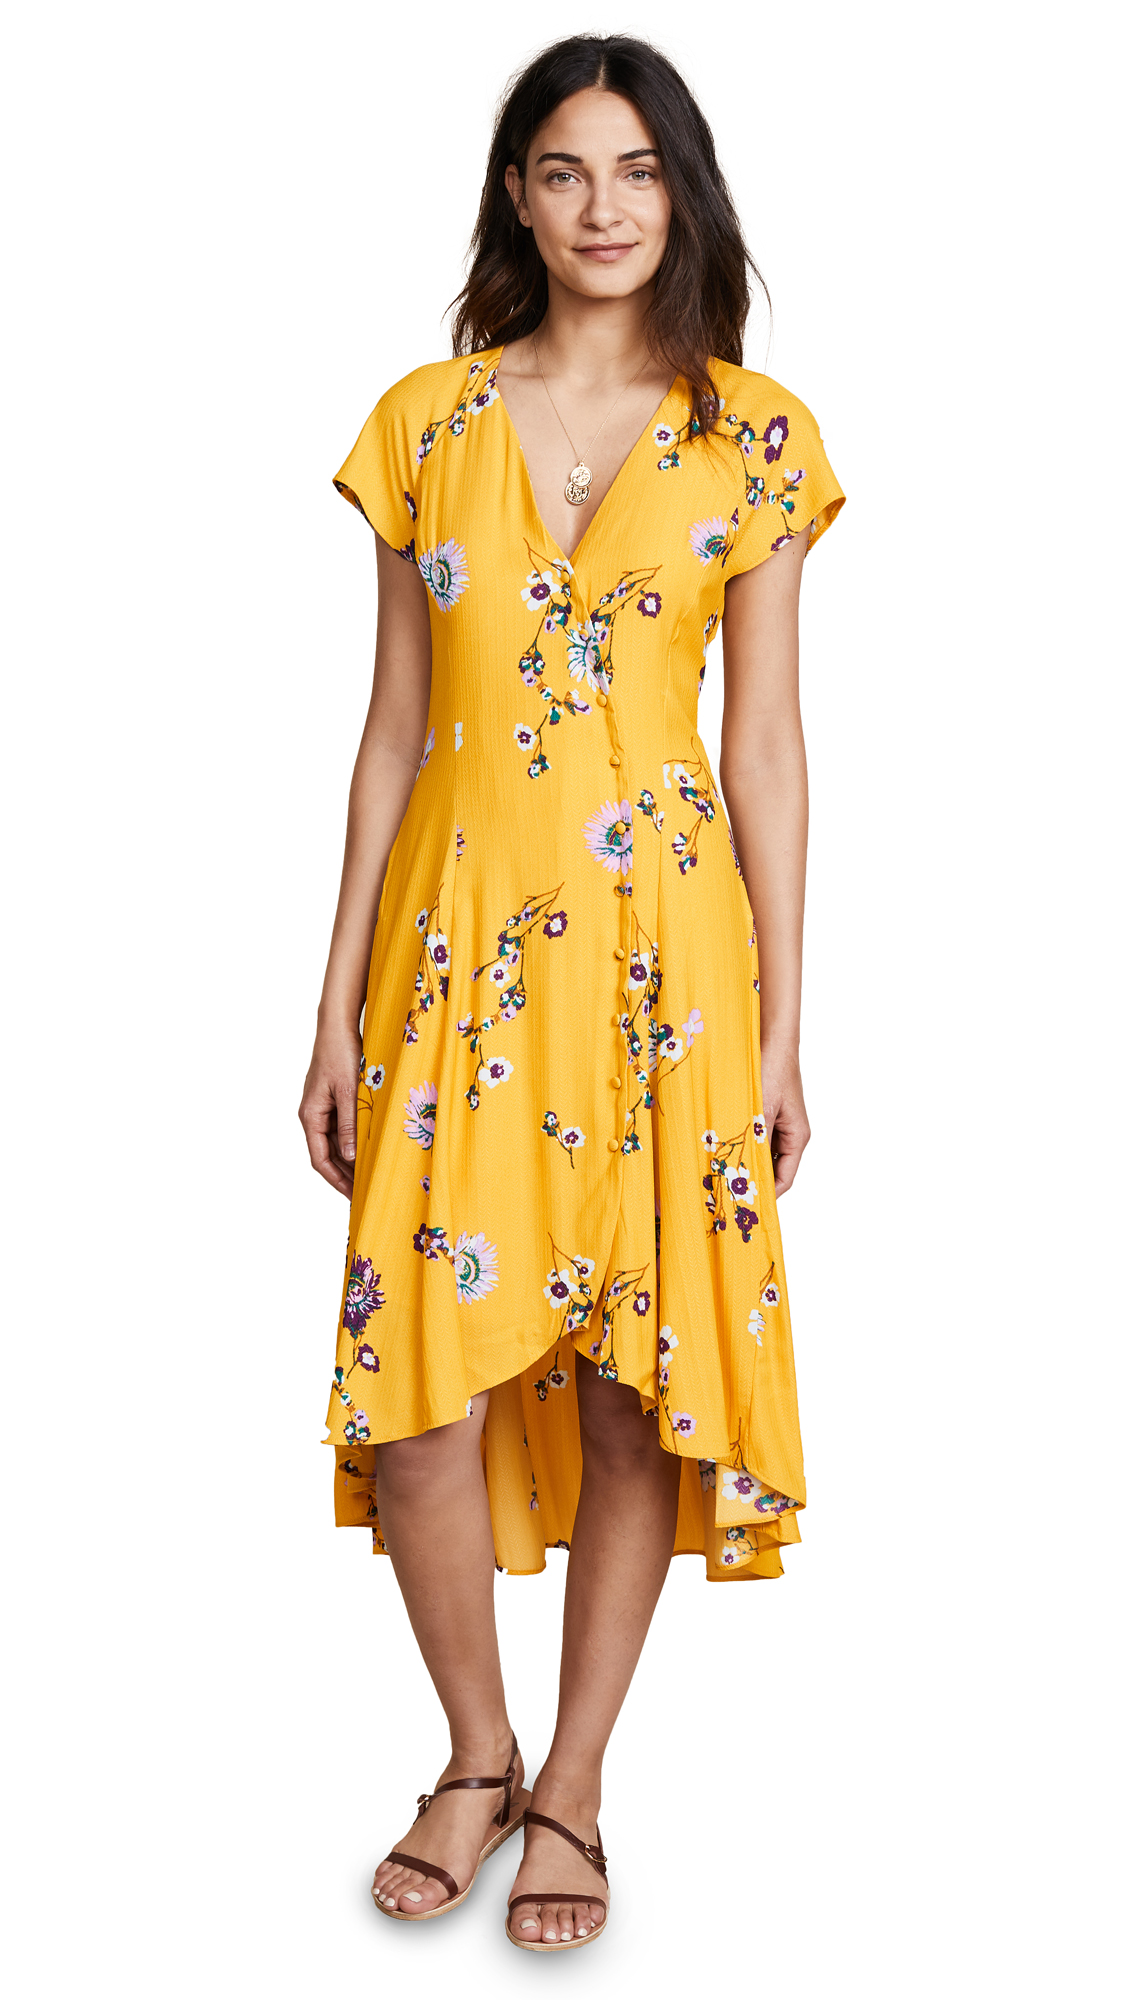 FREE PEOPLE LOST IN YOU FLORAL MAXI DRESS b65afd256